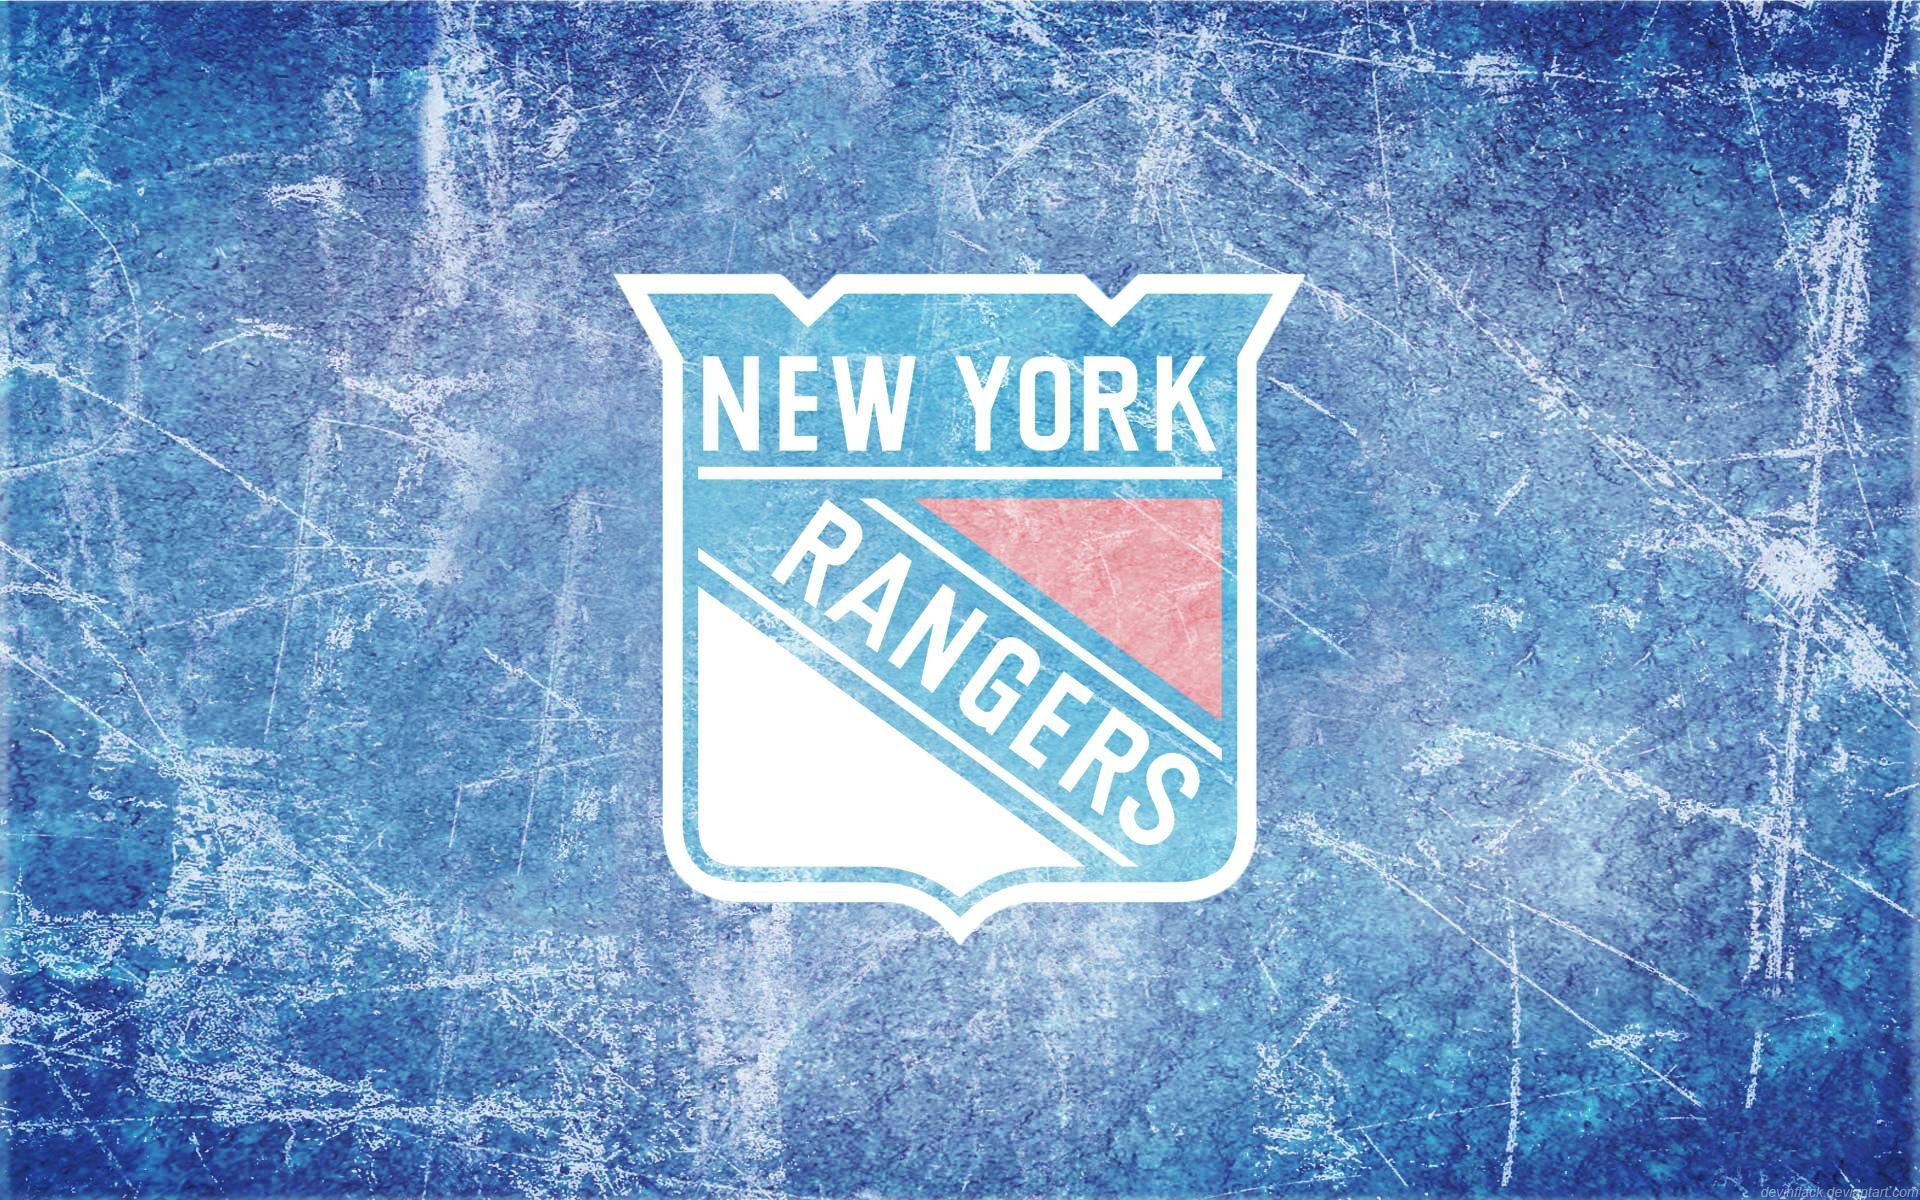 NY Rangers Backgrounds Wallpaper